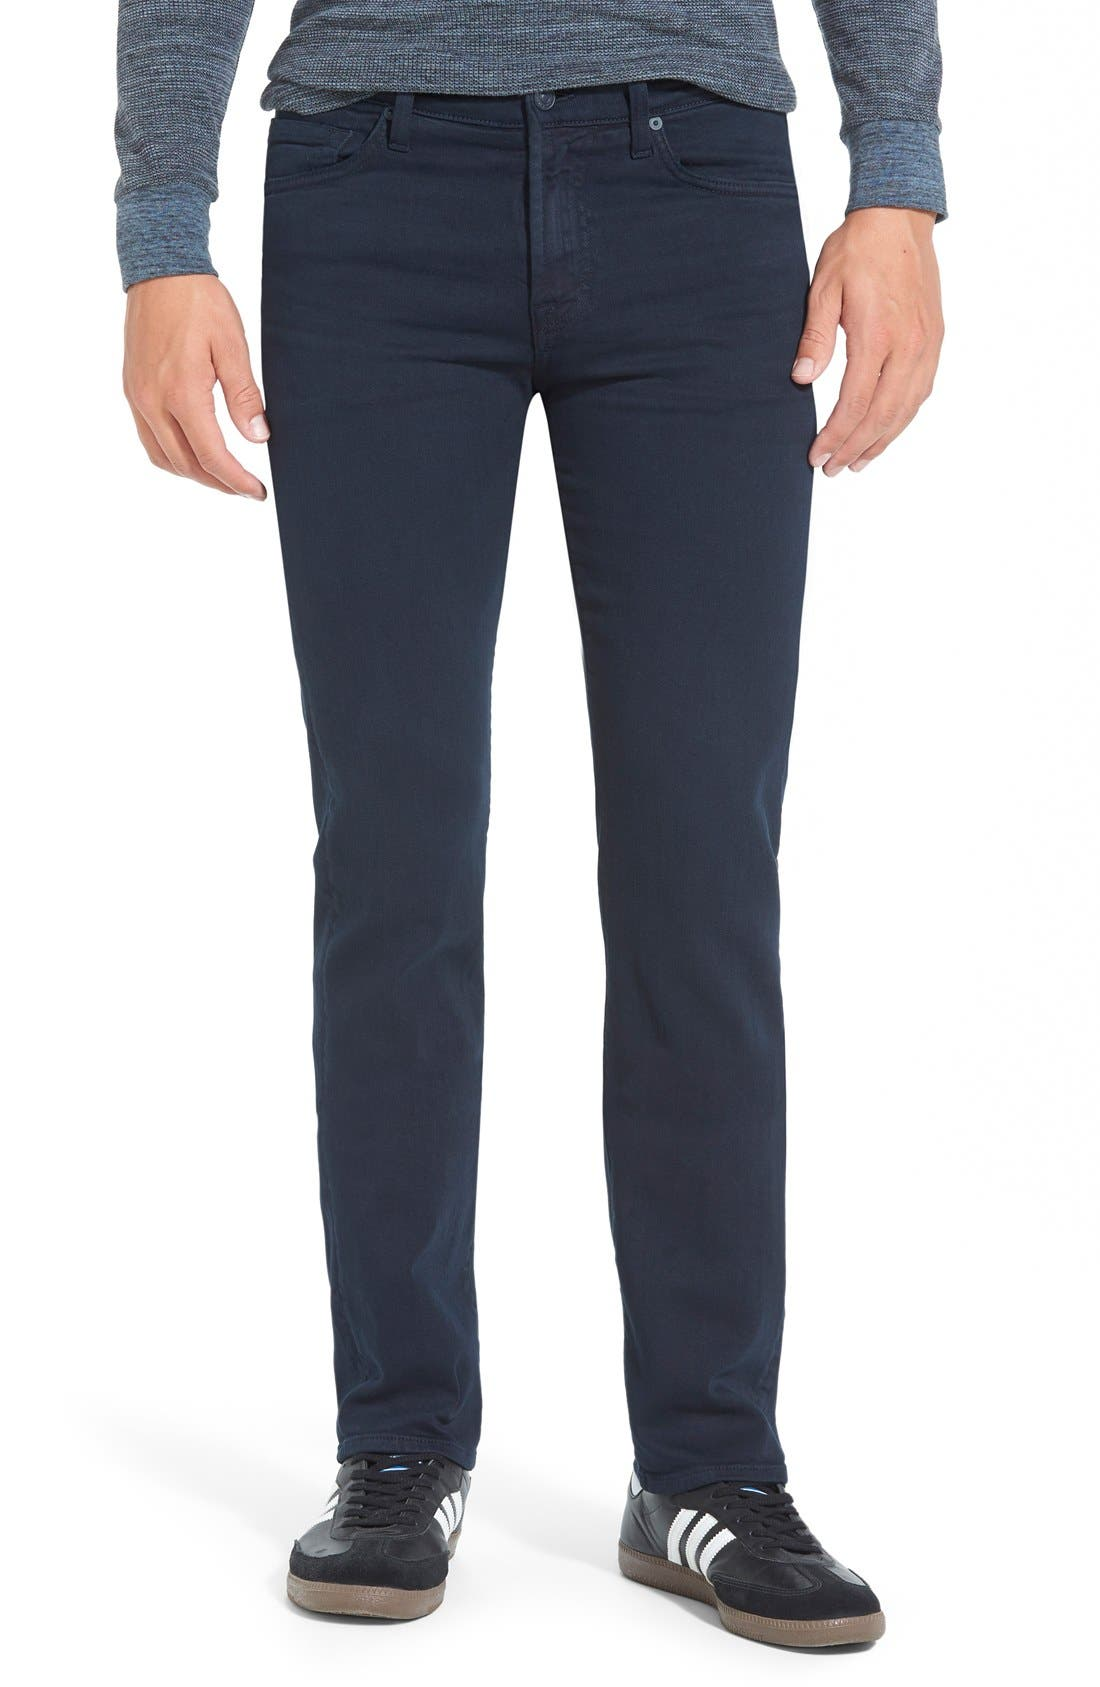 Alternate Image 1 Selected - 7 For All Mankind® 'Slimmy - Luxe Performance' Slim Fit Jeans (Night Navy)